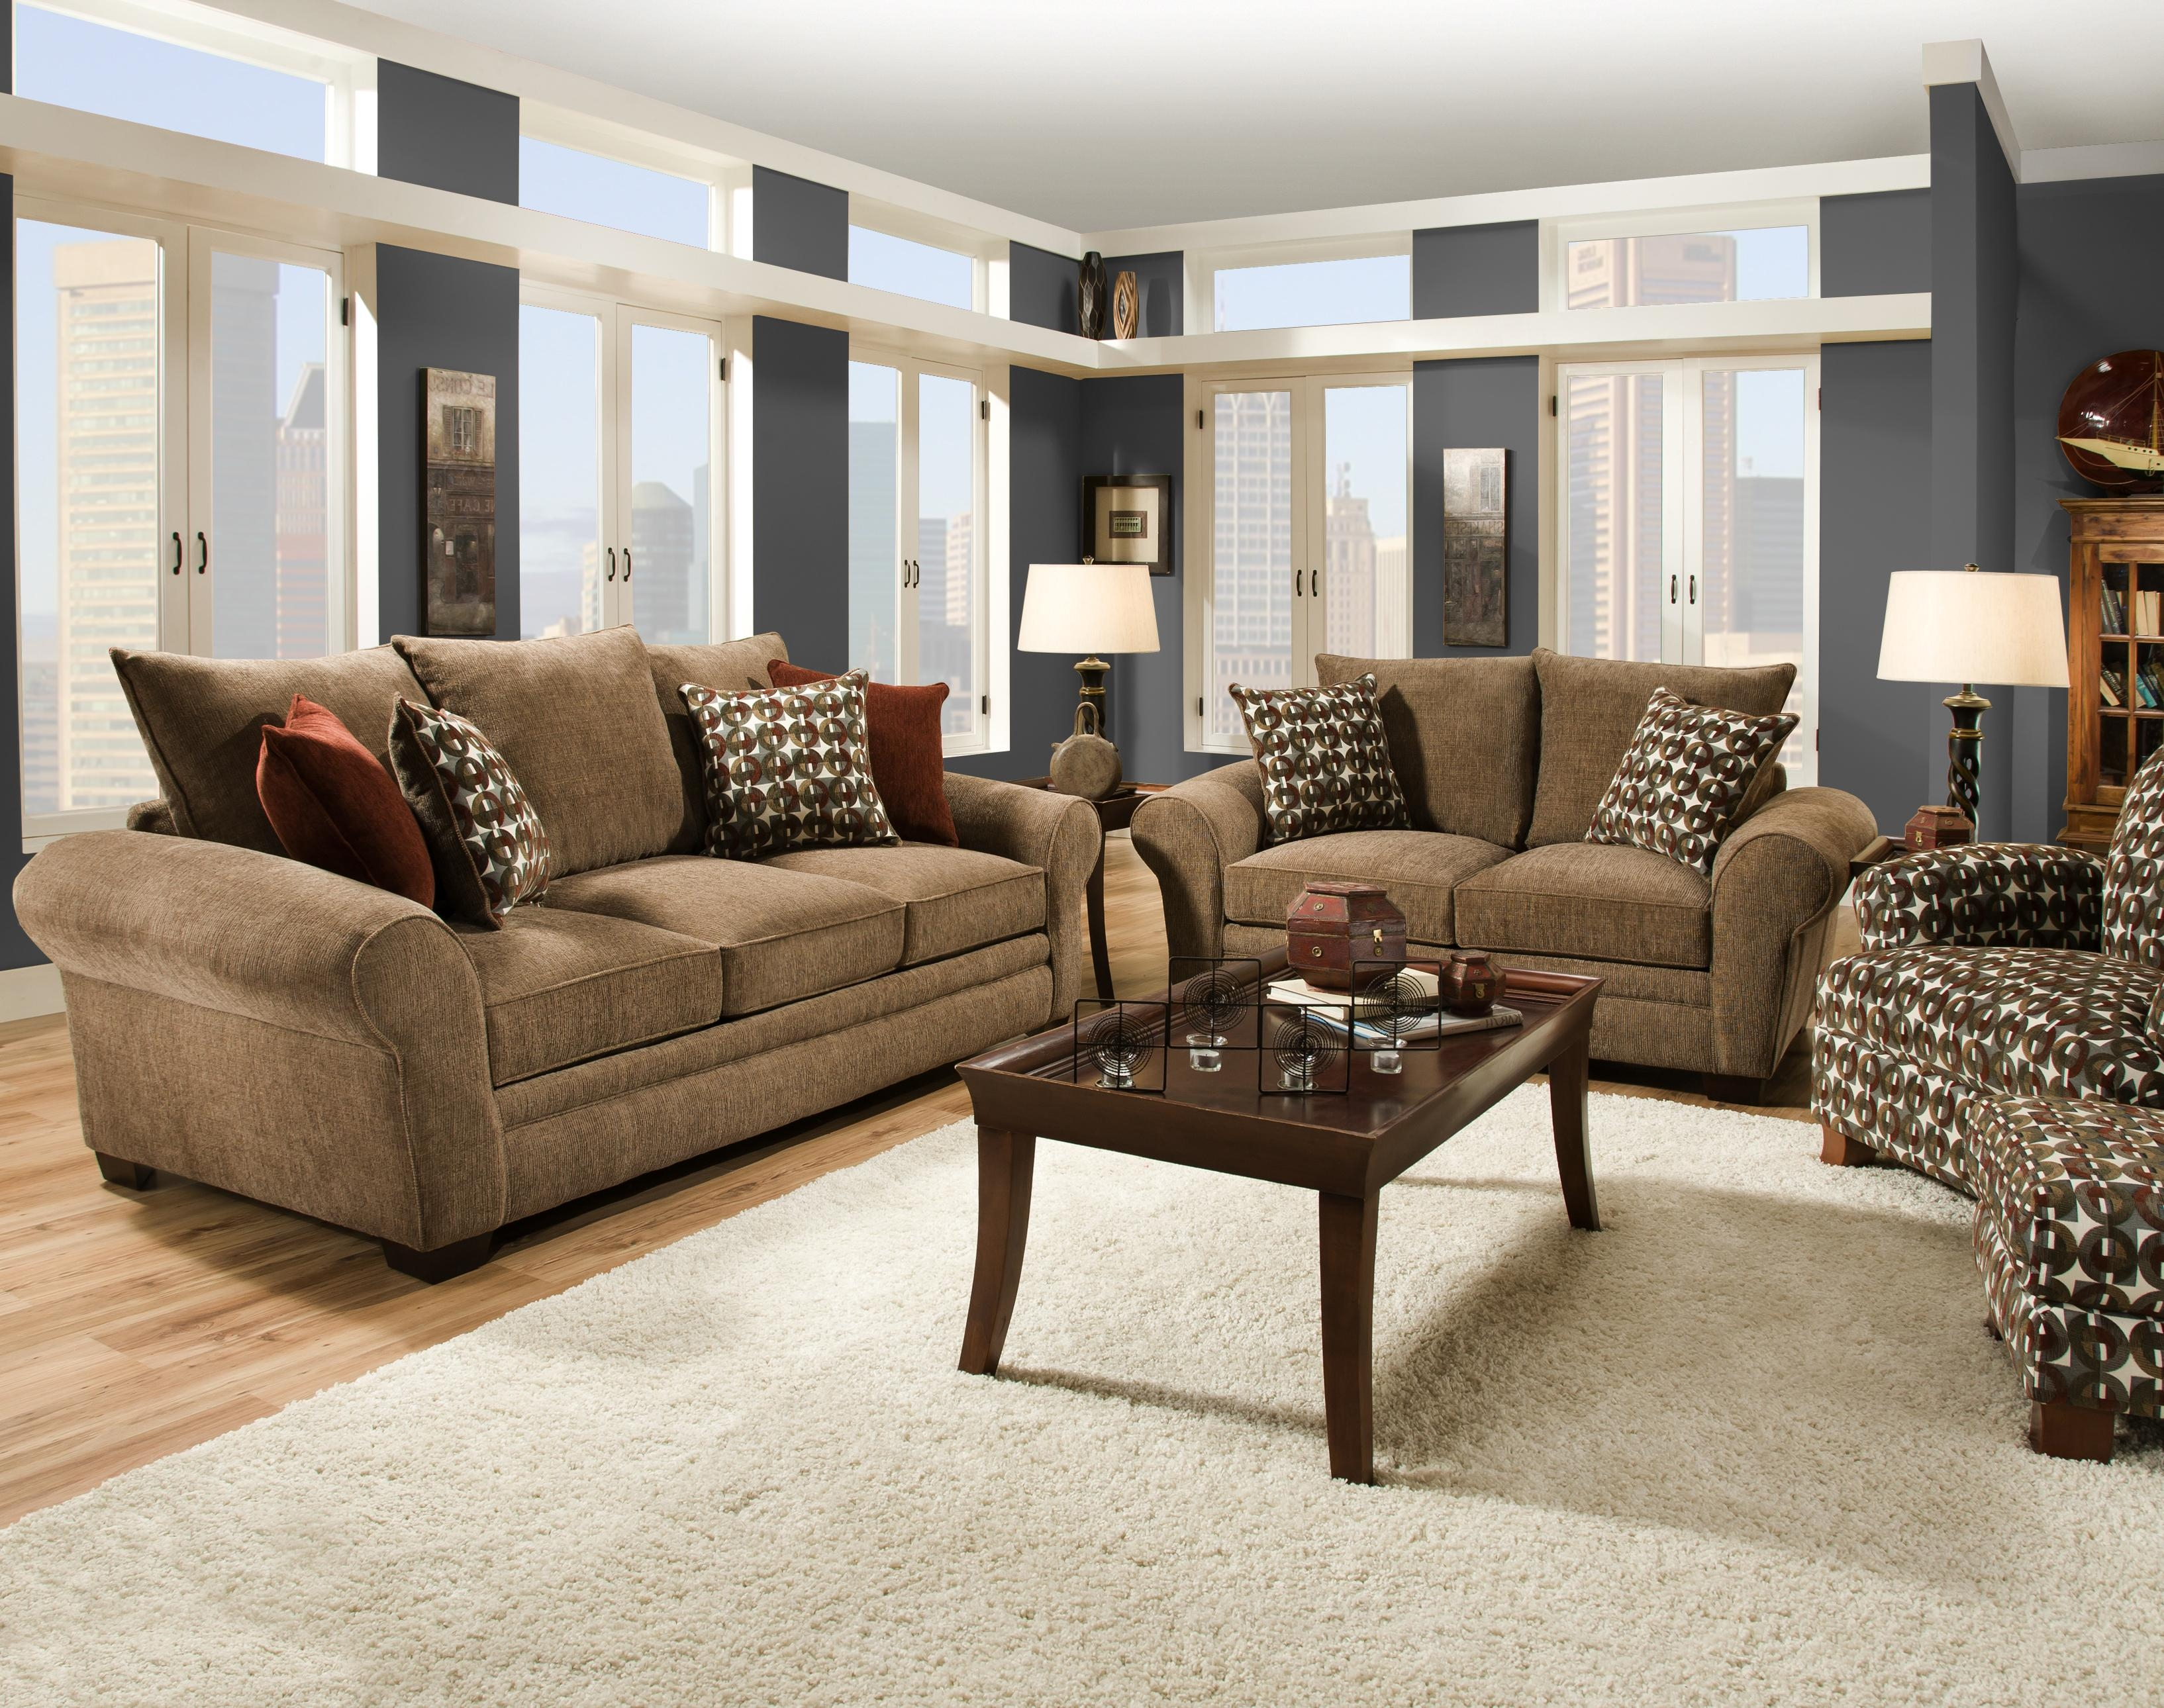 Elegant And Casual Living Room Sofa For Family Styled Comfort Inside Casual Sofas And Chairs (Image 9 of 15)